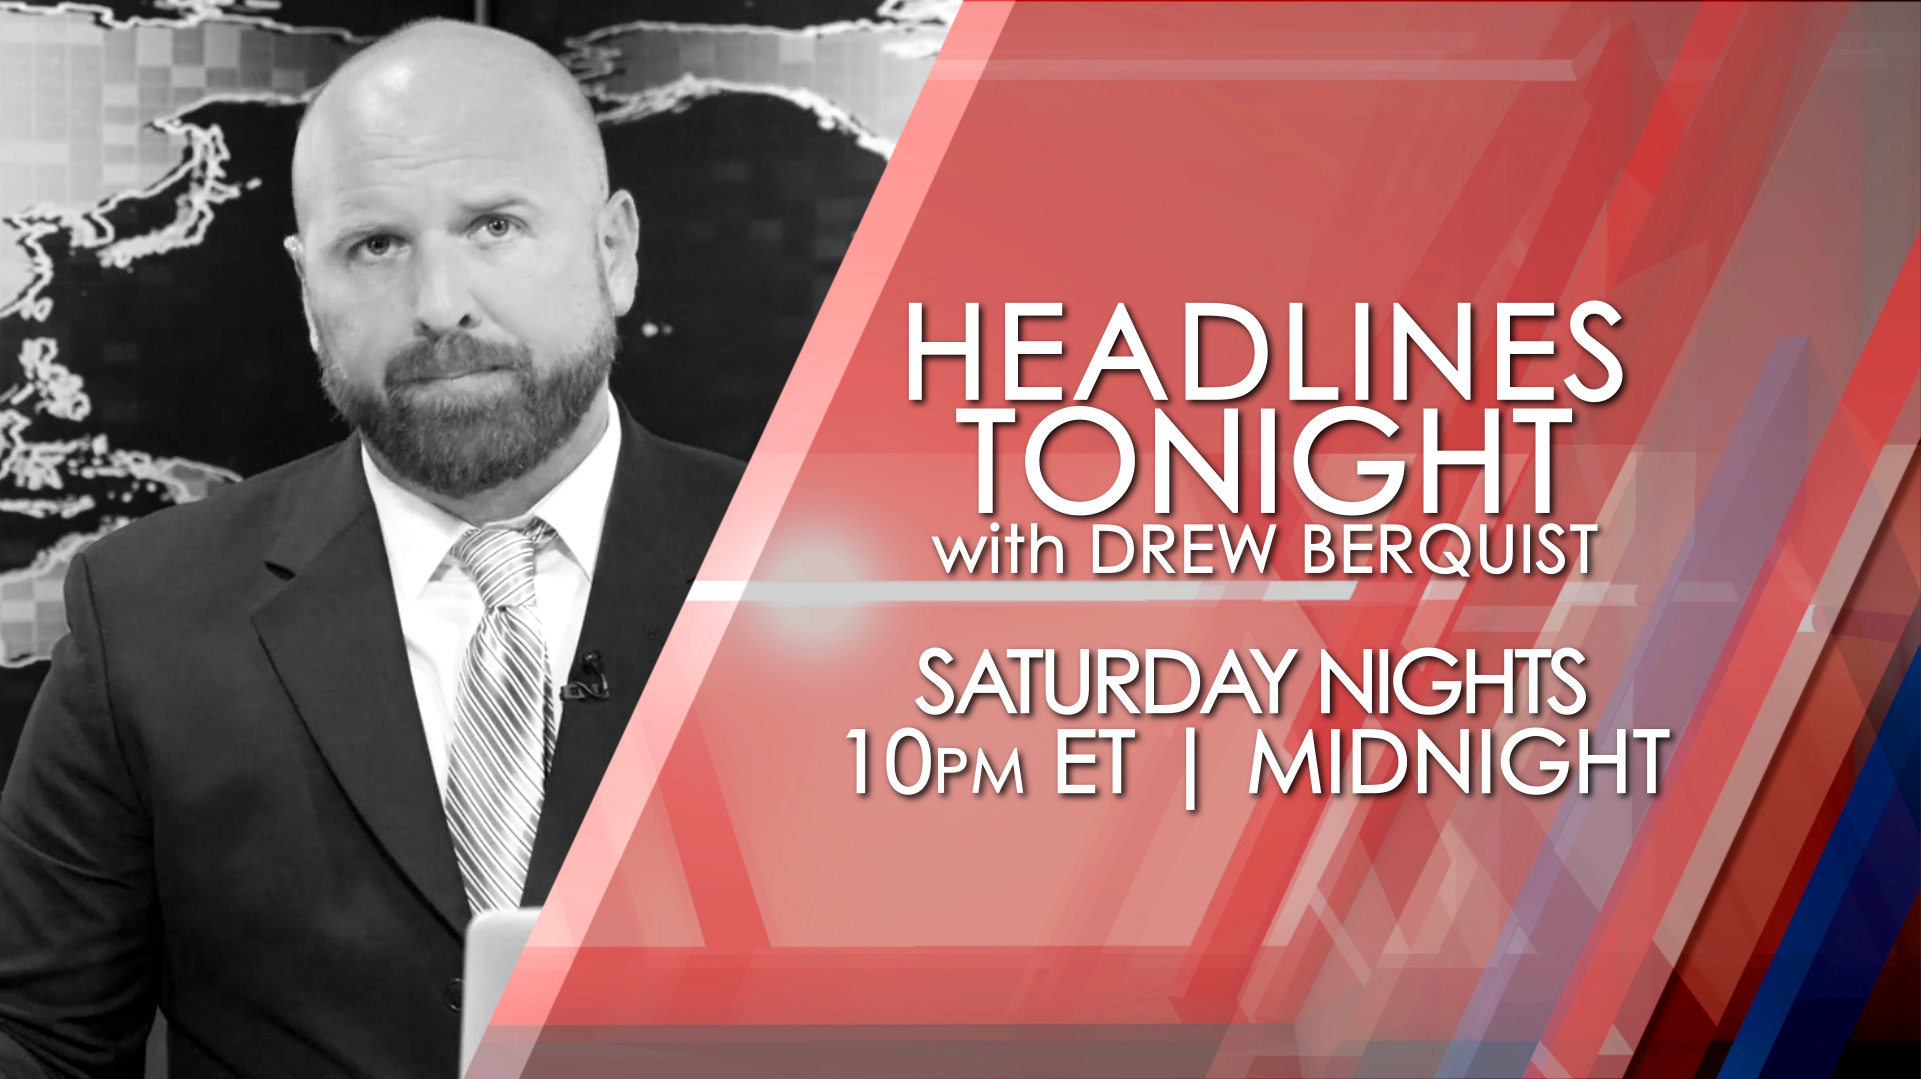 Headlines Tonight with Drew Berquist, Saturdays at 10pm ET